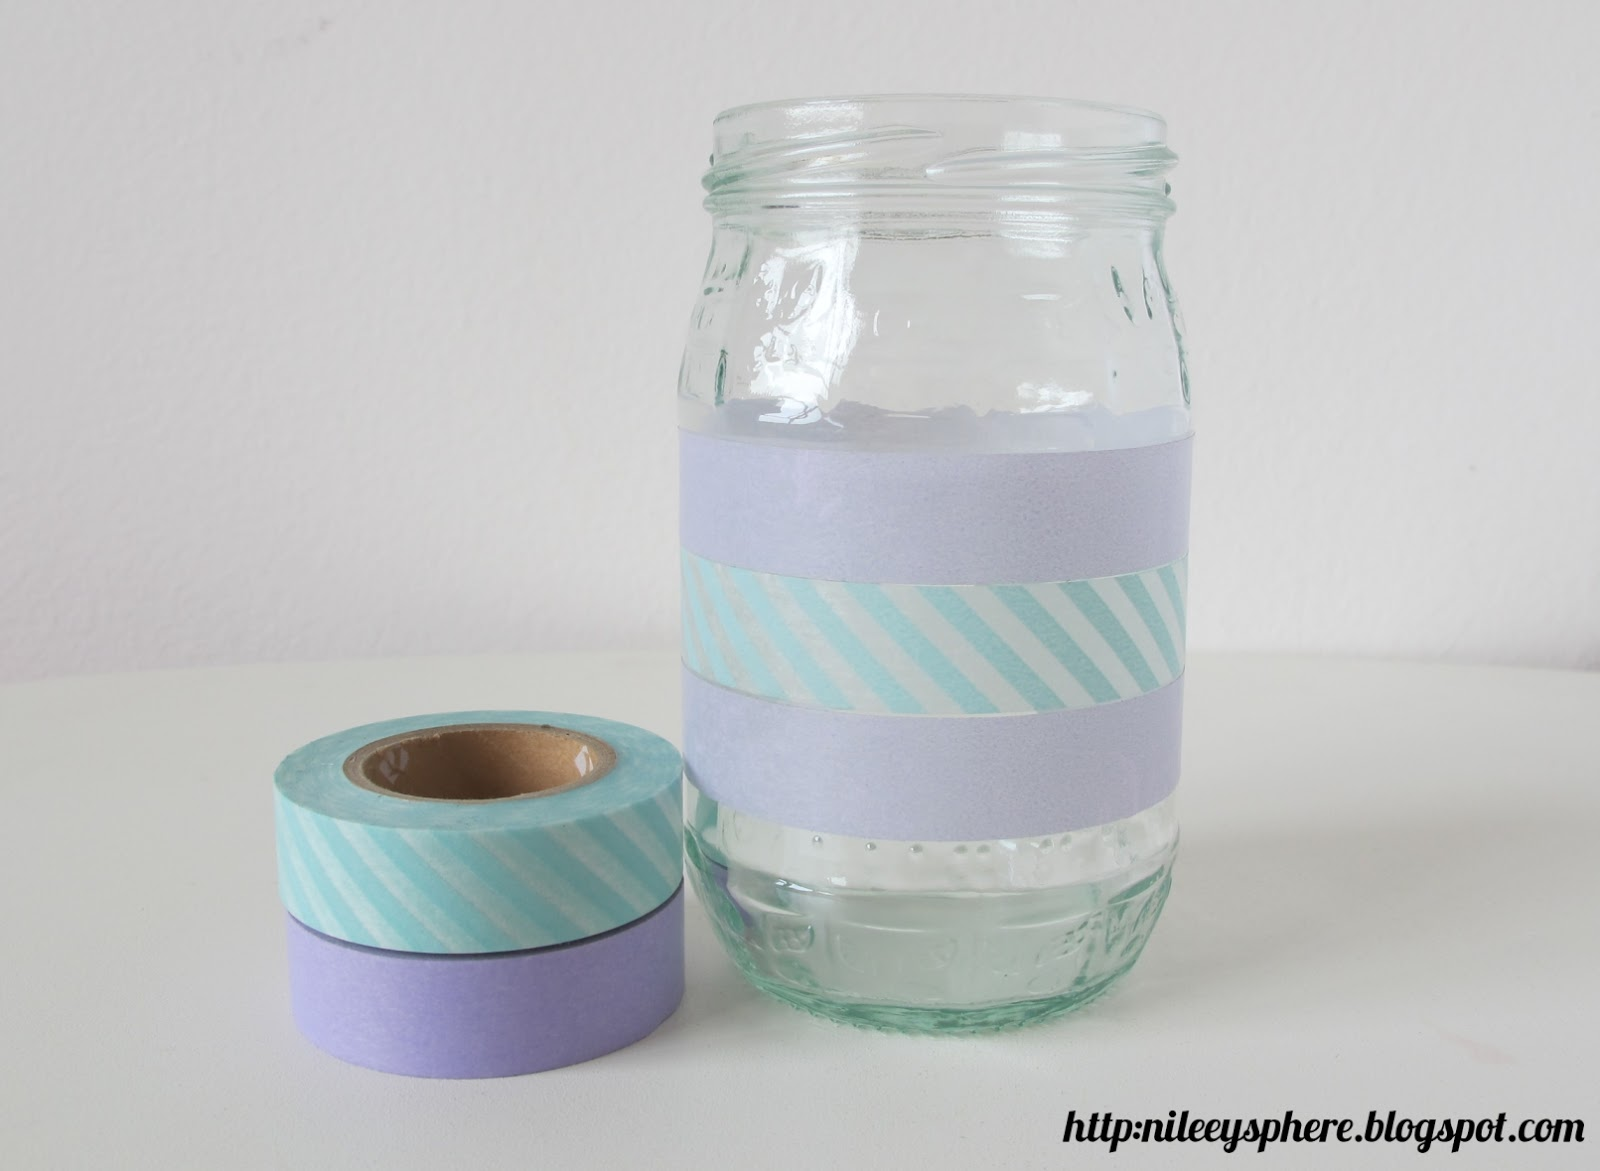 DIY Washi Tape and Mason Jar Vase ~ Nileey's Sphere